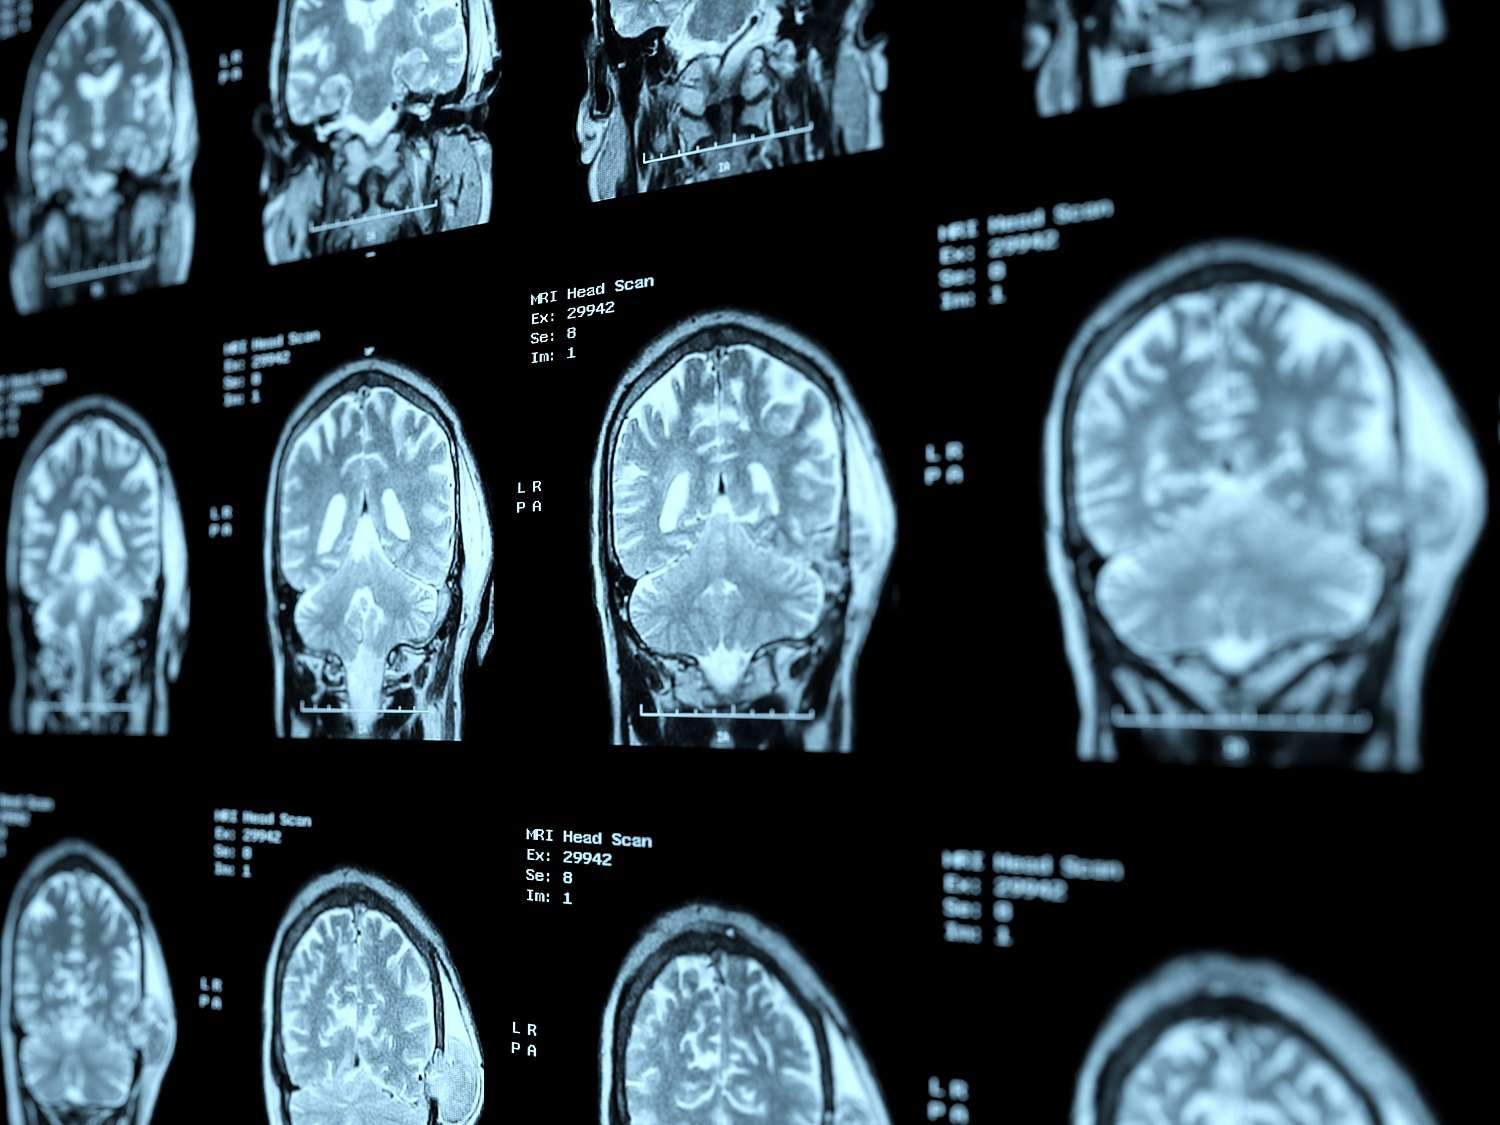 A series of MRI images of the brain